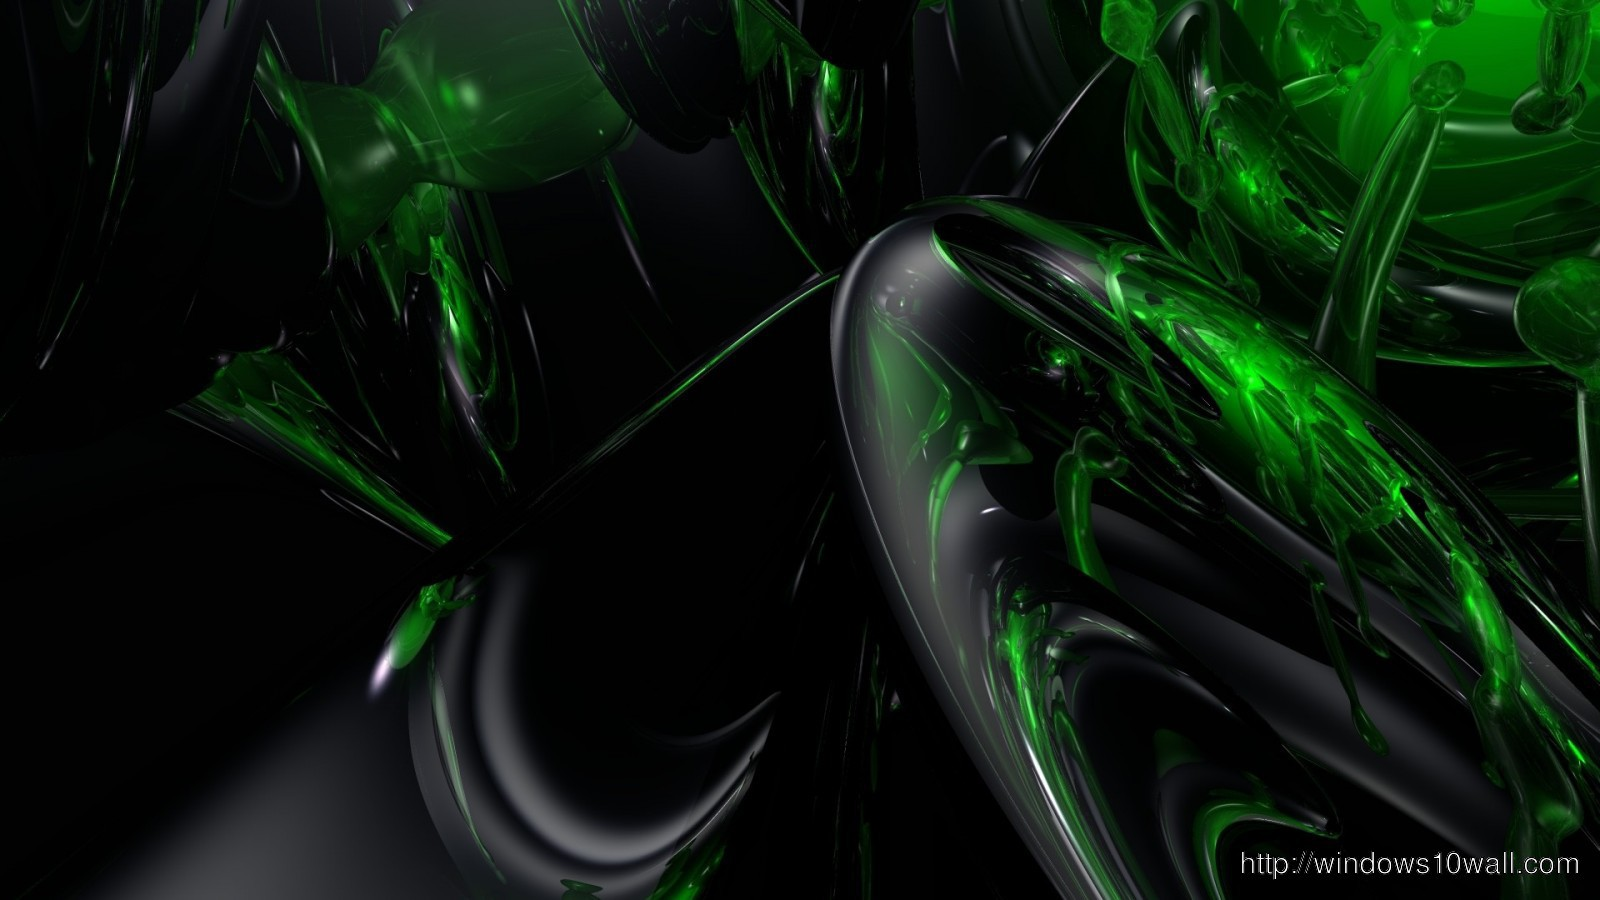 Black And Green Abstract Hd Wallpaper Windows 10 Wallpapers